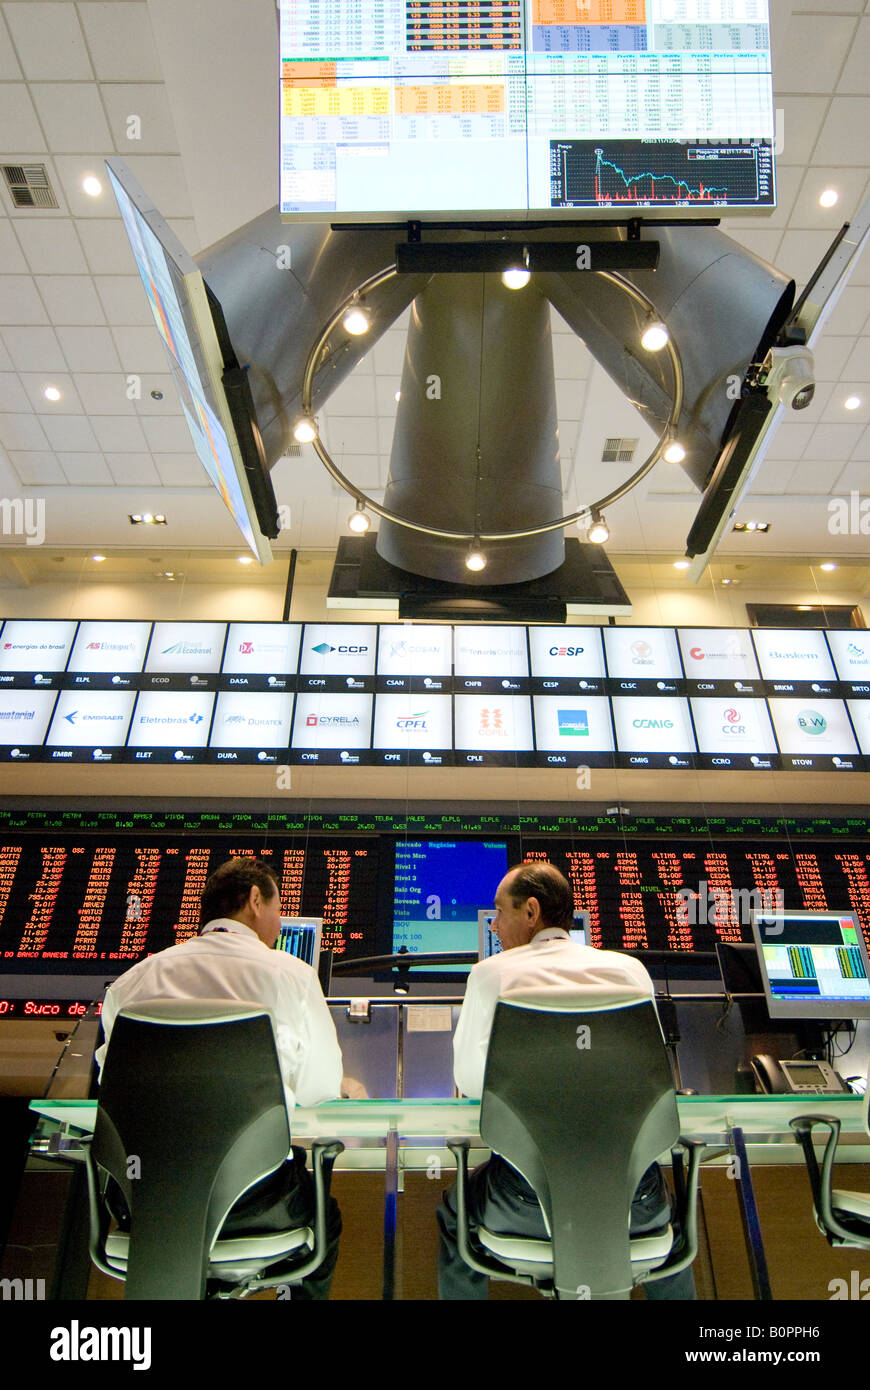 Stock brokers operate at Bovespa Sao Paulo Brazil 02 08 08 - Stock Image